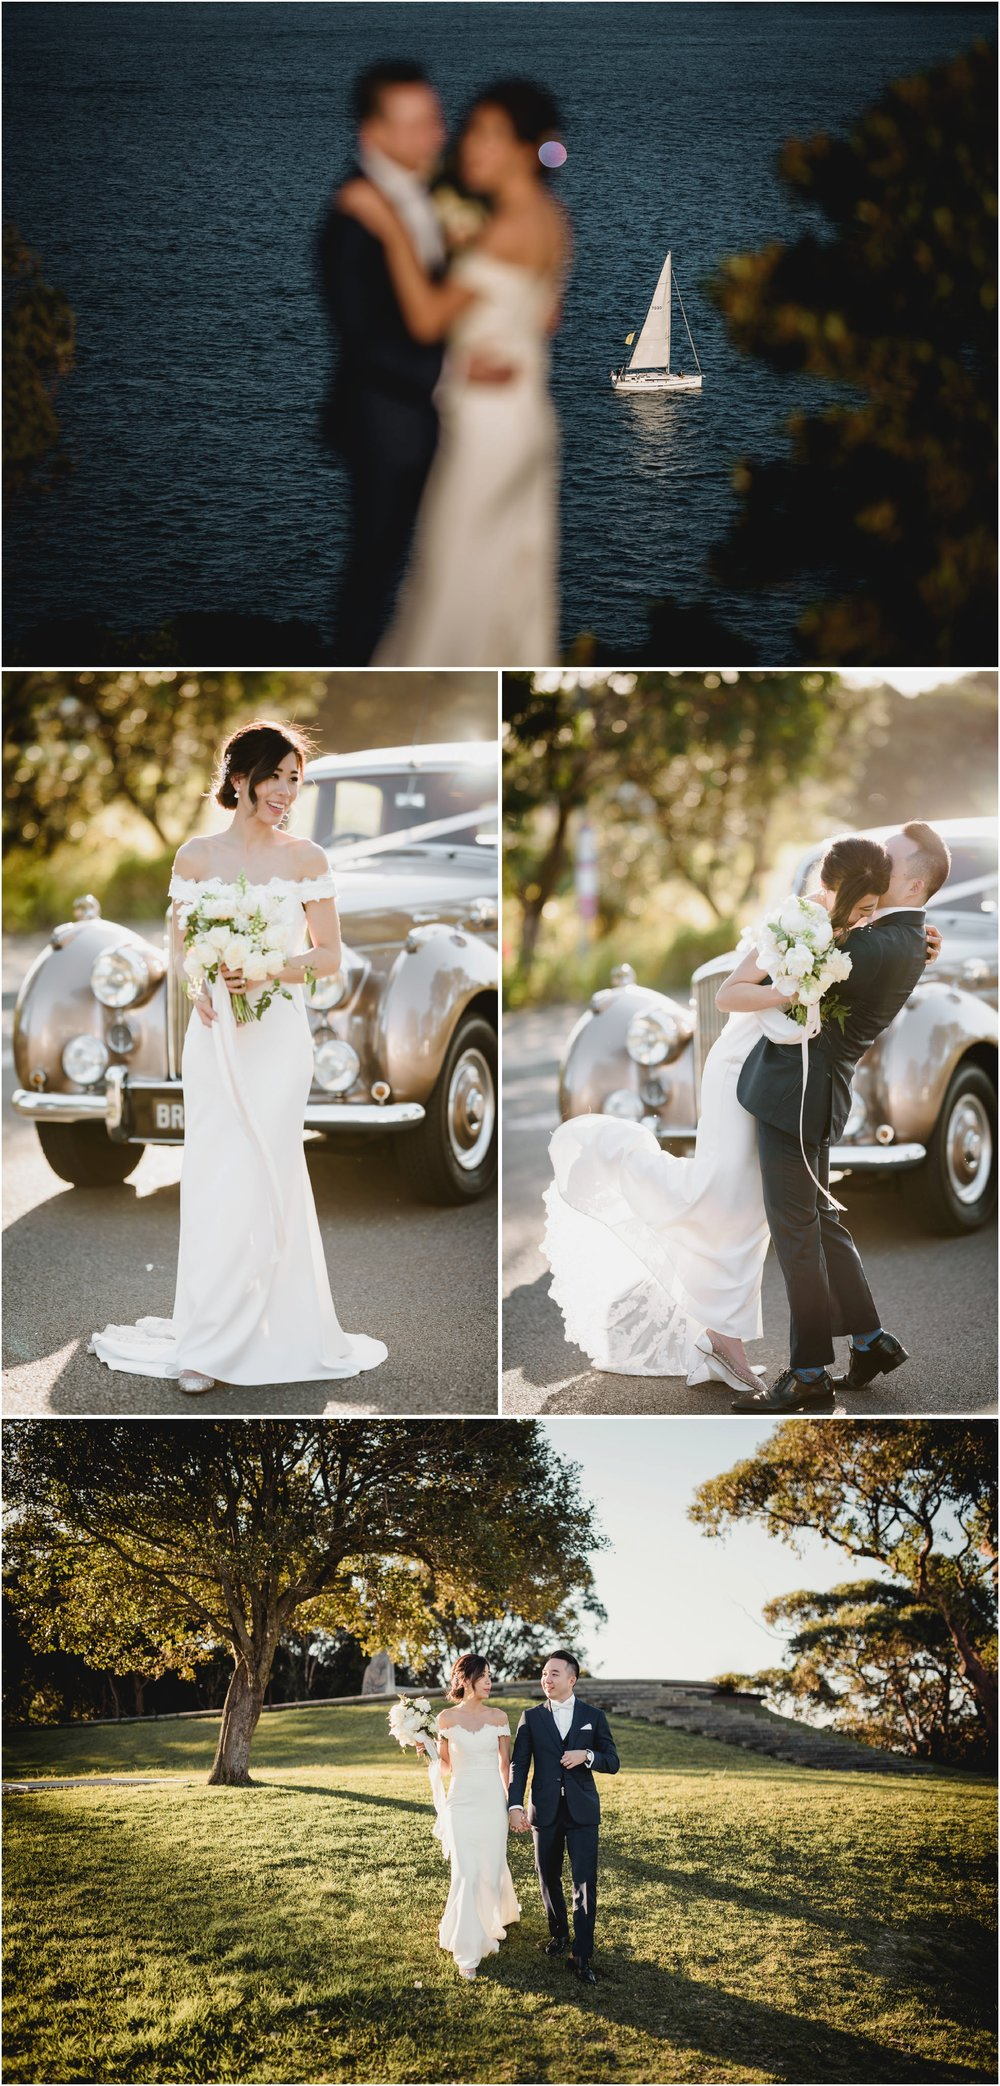 Bushbank Southern Highlands South Coast Wedding Jack Gilchrist Photography Sydney_0015.jpg